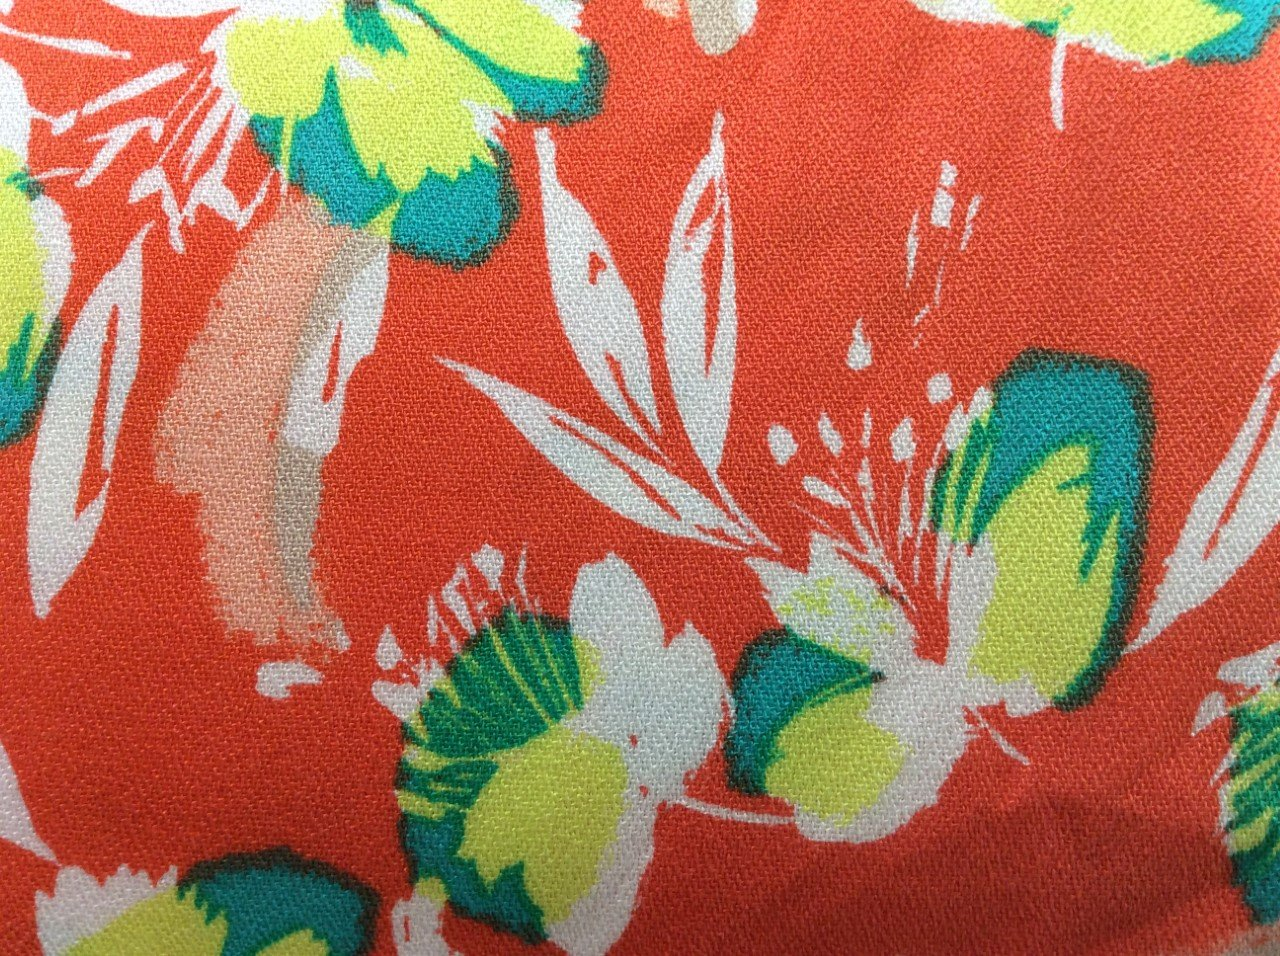 Bright Coral Rayon Crepe with White Yellow and Teal Flowers